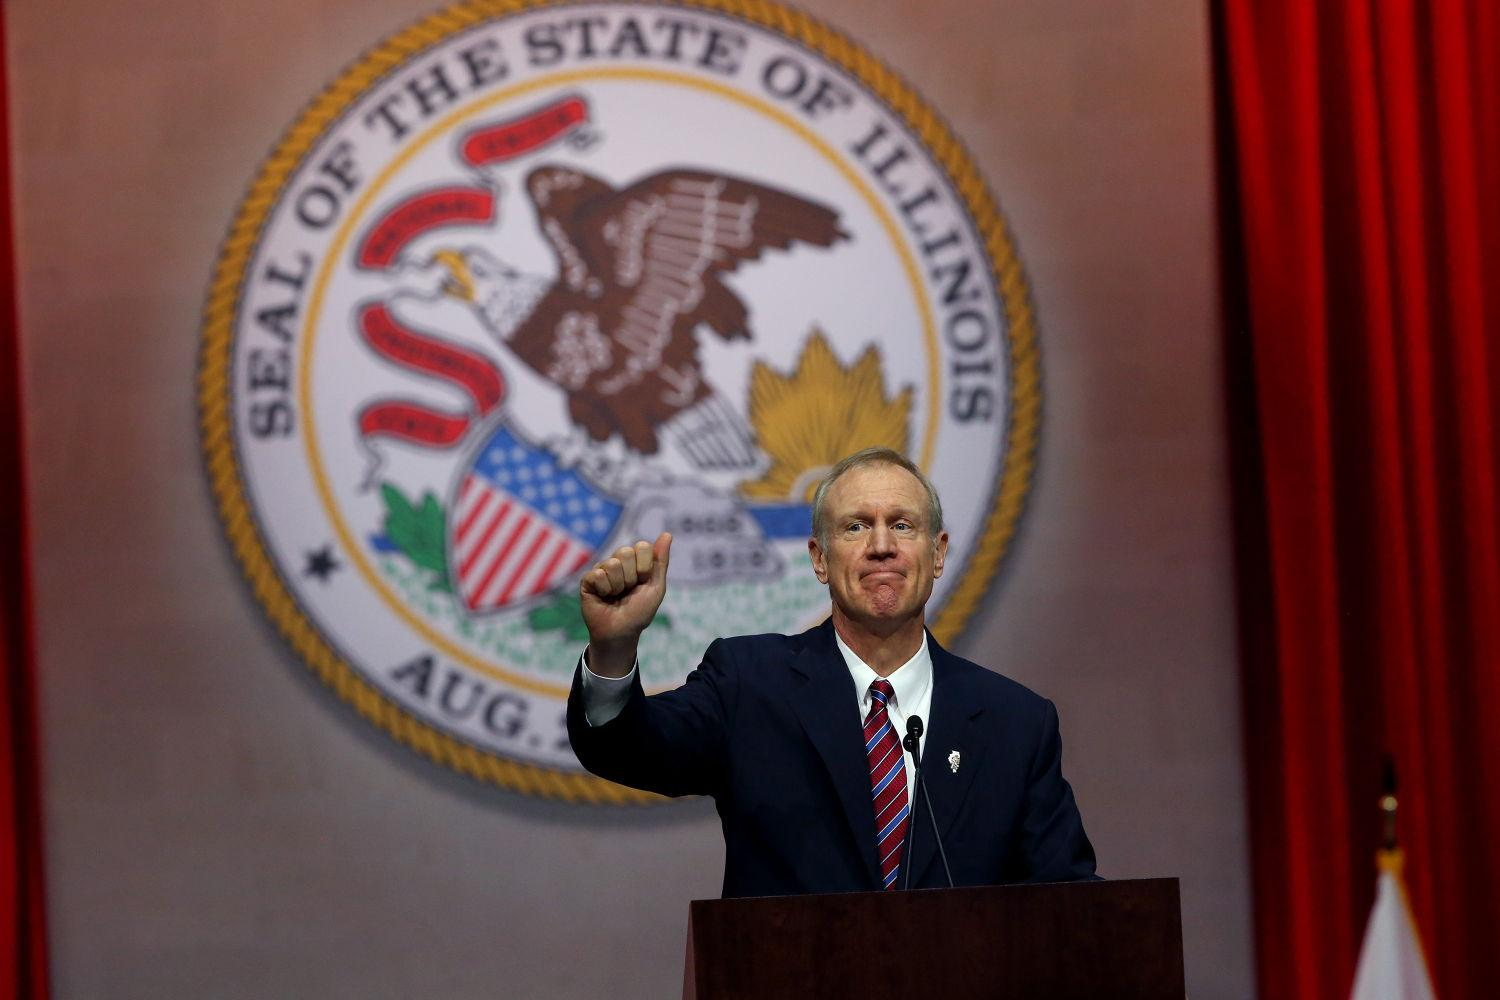 Gov. Bruce Rauner gives a thumbs up after giving his first speech as governor on Monday Jan. 12, 2015 at the Prairie Capital Convention Center in Springfield. (Nancy Stone/Chicago Tribune/TNS)